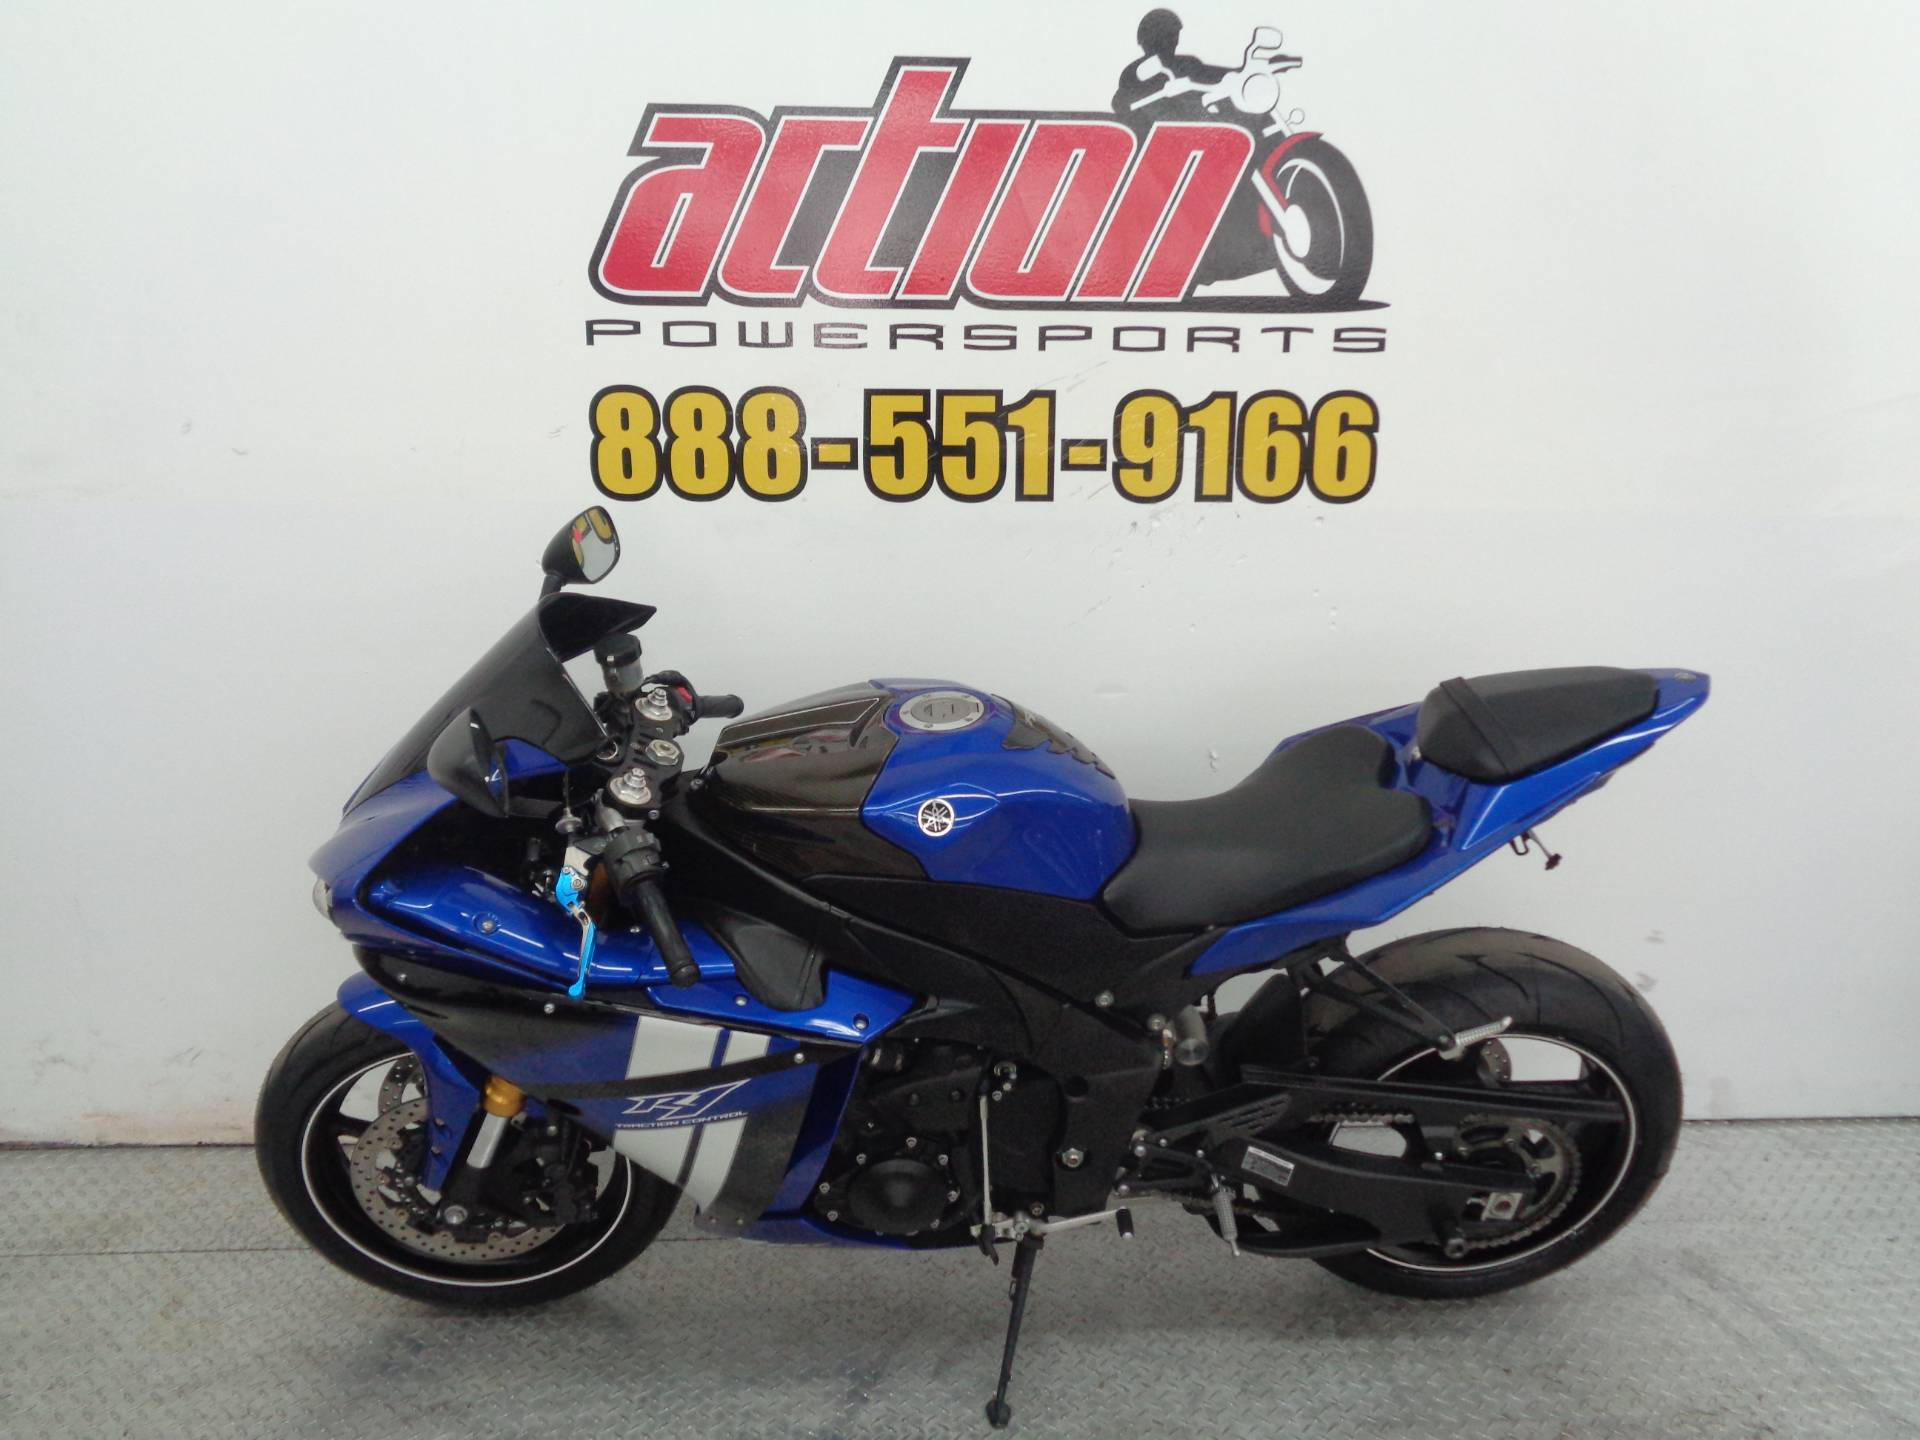 2012 Yamaha R-1 in Tulsa, Oklahoma - Photo 2